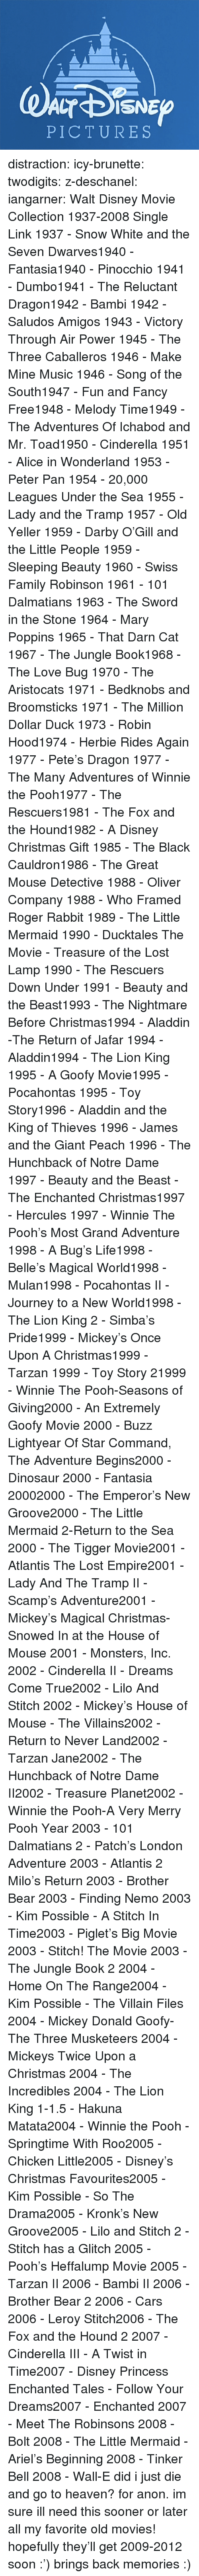 New Groove: PICTURES distraction:   icy-brunette:   twodigits:   z-deschanel:   iangarner:   Walt Disney Movie Collection 1937-2008 Single Link      1937 - Snow White and the Seven Dwarves1940 - Fantasia1940 - Pinocchio 1941 - Dumbo1941 - The Reluctant Dragon1942 - Bambi 1942 - Saludos Amigos 1943 - Victory Through Air Power 1945 - The Three Caballeros 1946 - Make Mine Music 1946 - Song of the South1947 - Fun and Fancy Free1948 - Melody Time1949 - The Adventures Of Ichabod and Mr. Toad1950 - Cinderella 1951 - Alice in Wonderland 1953 - Peter Pan 1954 - 20,000 Leagues Under the Sea 1955 - Lady and the Tramp 1957 - Old Yeller 1959 - Darby O'Gill and the Little People 1959 - Sleeping Beauty 1960 - Swiss Family Robinson 1961 - 101 Dalmatians 1963 - The Sword in the Stone 1964 - Mary Poppins 1965 - That Darn Cat 1967 - The Jungle Book1968 - The Love Bug 1970 - The Aristocats 1971 - Bedknobs and Broomsticks 1971 - The Million Dollar Duck 1973 - Robin Hood1974 - Herbie Rides Again 1977 - Pete's Dragon 1977 - The Many Adventures of Winnie the Pooh1977 - The Rescuers1981 - The Fox and the Hound1982 - A Disney Christmas Gift 1985 - The Black Cauldron1986 - The Great Mouse Detective 1988 - Oliver  Company 1988 - Who Framed Roger Rabbit 1989 - The Little Mermaid 1990 - Ducktales The Movie - Treasure of the Lost Lamp 1990 - The Rescuers Down Under 1991 - Beauty and the Beast1993 - The Nightmare Before Christmas1994 - Aladdin -The Return of Jafar 1994 - Aladdin1994 - The Lion King 1995 - A Goofy Movie1995 - Pocahontas 1995 - Toy Story1996 - Aladdin and the King of Thieves 1996 - James and the Giant Peach 1996 - The Hunchback of Notre Dame 1997 - Beauty and the Beast - The Enchanted Christmas1997 - Hercules 1997 - Winnie The Pooh's Most Grand Adventure 1998 - A Bug's Life1998 - Belle's Magical World1998 - Mulan1998 - Pocahontas II - Journey to a New World1998 - The Lion King 2 - Simba's Pride1999 - Mickey's Once Upon A Christmas1999 - Tarzan 1999 - Toy Story 21999 - Winnie The Pooh-Seasons of Giving2000 - An Extremely Goofy Movie 2000 - Buzz Lightyear Of Star Command, The Adventure Begins2000 - Dinosaur 2000 - Fantasia 20002000 - The Emperor's New Groove2000 - The Little Mermaid 2-Return to the Sea 2000 - The Tigger Movie2001 - Atlantis The Lost Empire2001 - Lady And The Tramp II - Scamp's Adventure2001 - Mickey's Magical Christmas-Snowed In at the House of Mouse 2001 - Monsters, Inc. 2002 - Cinderella II - Dreams Come True2002 - Lilo And Stitch 2002 - Mickey's House of Mouse - The Villains2002 - Return to Never Land2002 - Tarzan  Jane2002 - The Hunchback of Notre Dame II2002 - Treasure Planet2002 - Winnie the Pooh-A Very Merry Pooh Year 2003 - 101 Dalmatians 2 - Patch's London Adventure 2003 - Atlantis 2 Milo's Return 2003 - Brother Bear 2003 - Finding Nemo 2003 - Kim Possible - A Stitch In Time2003 - Piglet's Big Movie 2003 - Stitch! The Movie 2003 - The Jungle Book 2 2004 - Home On The Range2004 - Kim Possible - The Villain Files 2004 - Mickey Donald Goofy-The Three Musketeers 2004 - Mickeys Twice Upon a Christmas 2004 - The Incredibles 2004 - The Lion King 1-1.5 - Hakuna Matata2004 - Winnie the Pooh - Springtime With Roo2005 - Chicken Little2005 - Disney's Christmas Favourites2005 - Kim Possible - So The Drama2005 - Kronk's New Groove2005 - Lilo and Stitch 2 - Stitch has a Glitch 2005 - Pooh's Heffalump Movie 2005 - Tarzan II 2006 - Bambi II 2006 - Brother Bear 2 2006 - Cars 2006 - Leroy  Stitch2006 - The Fox and the Hound 2 2007 - Cinderella III - A Twist in Time2007 - Disney Princess Enchanted Tales - Follow Your Dreams2007 - Enchanted 2007 - Meet The Robinsons 2008 - Bolt 2008 - The Little Mermaid - Ariel's Beginning 2008 - Tinker Bell 2008 - Wall-E      did i just die and go to heaven?   for anon.    im sure ill need this sooner or later    all my favorite old movies! hopefully they'll get 2009-2012 soon :')   brings back memories :)